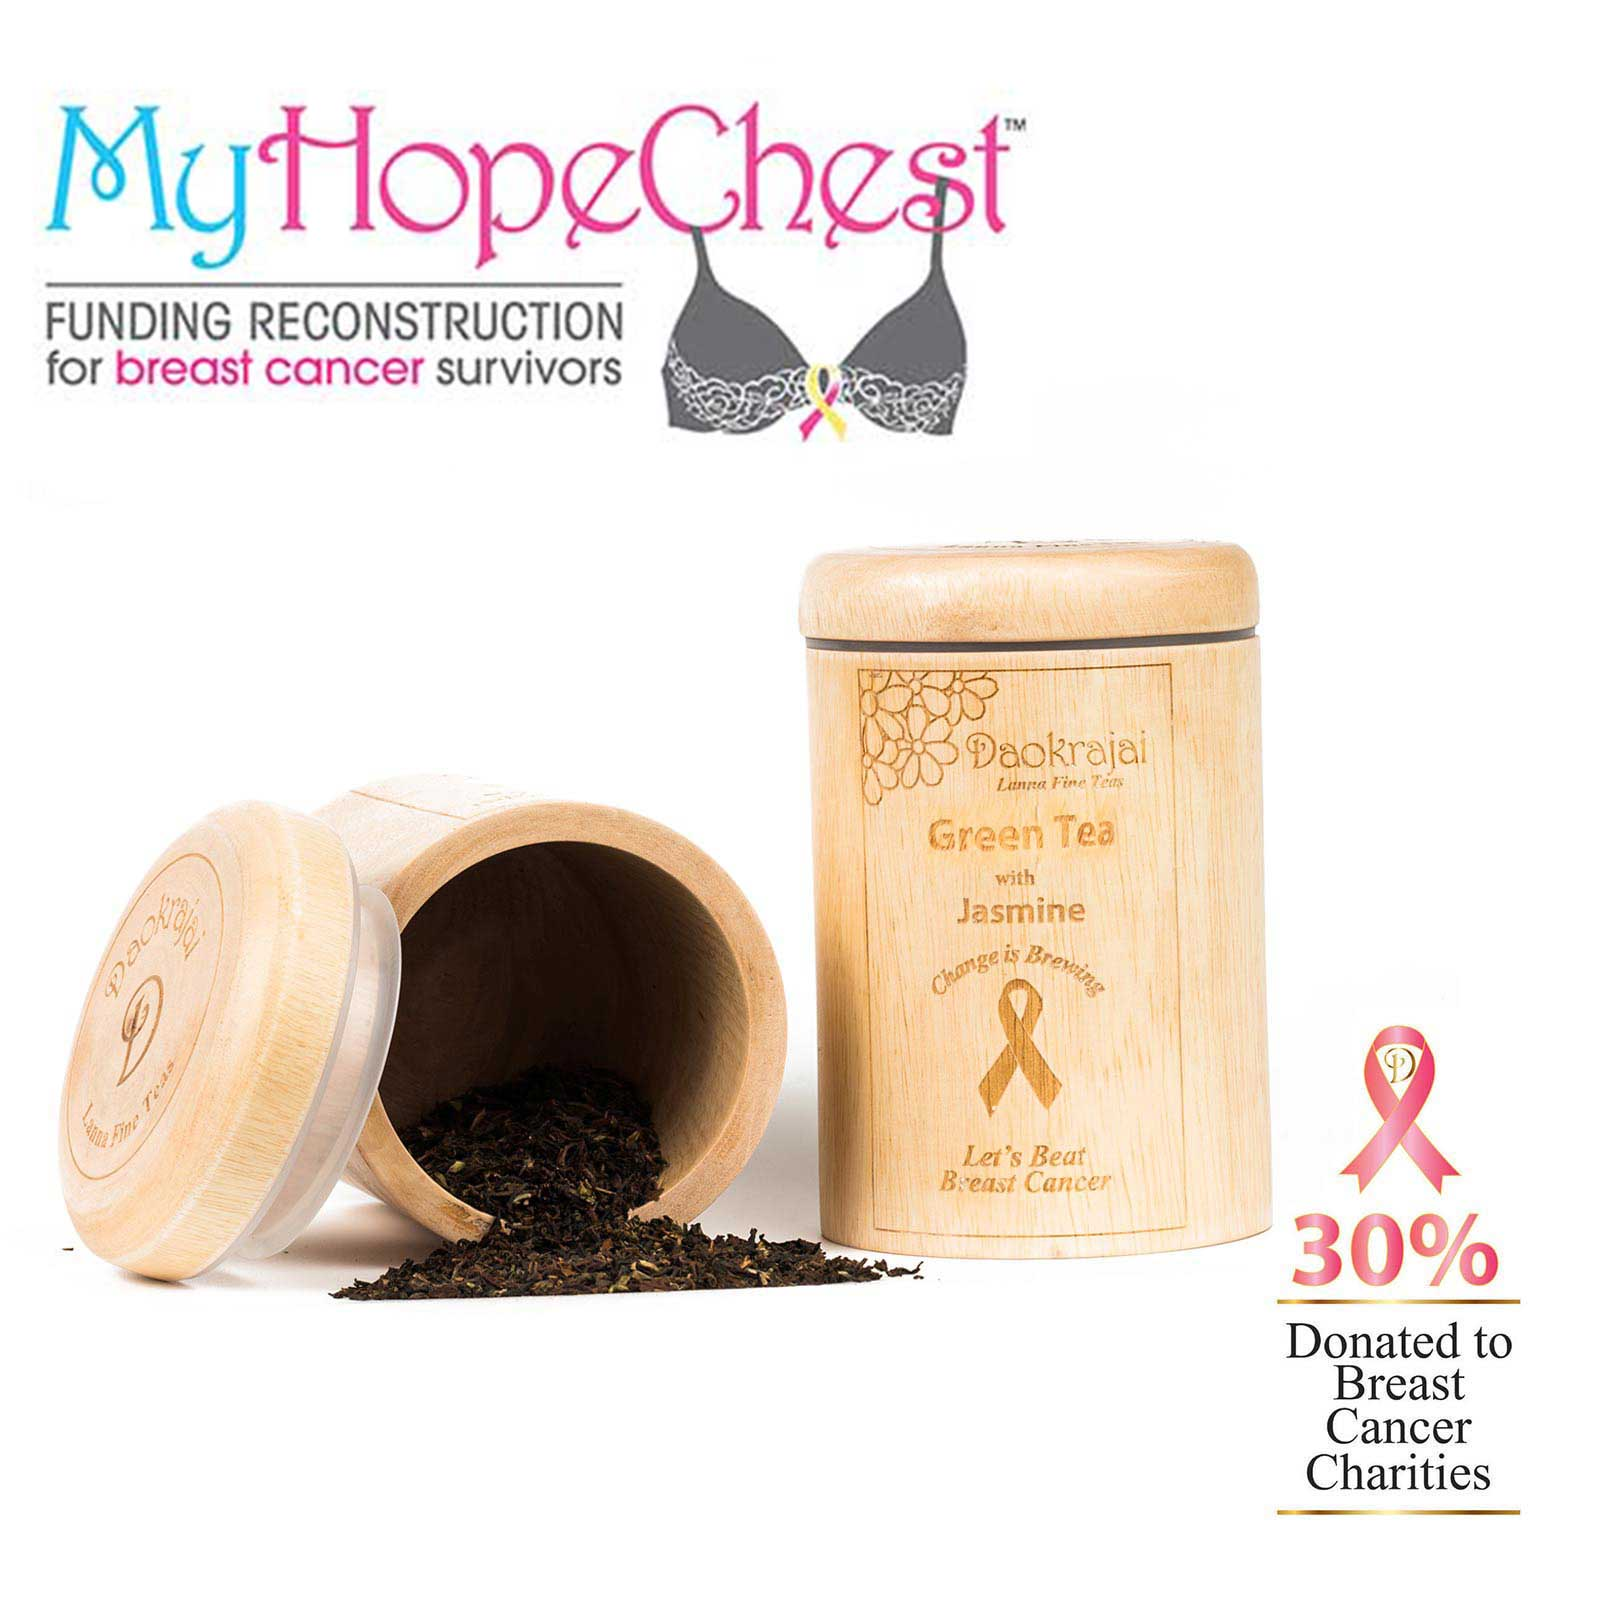 Green Tea with Jasmine supporting My Hope Chest cancer charity